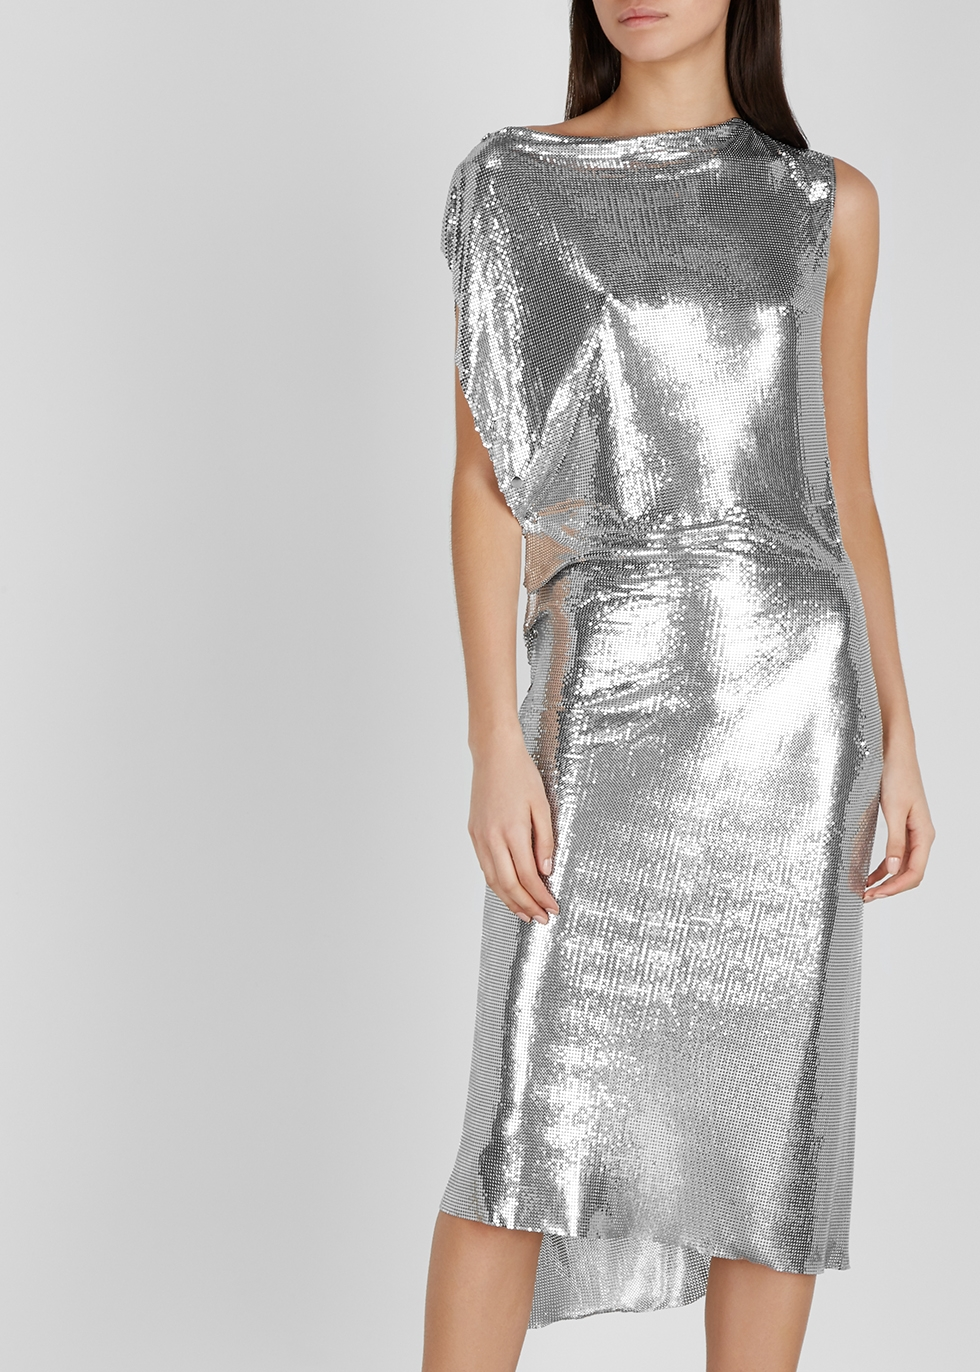 Silver draped chainmail dress - Paco Rabanne